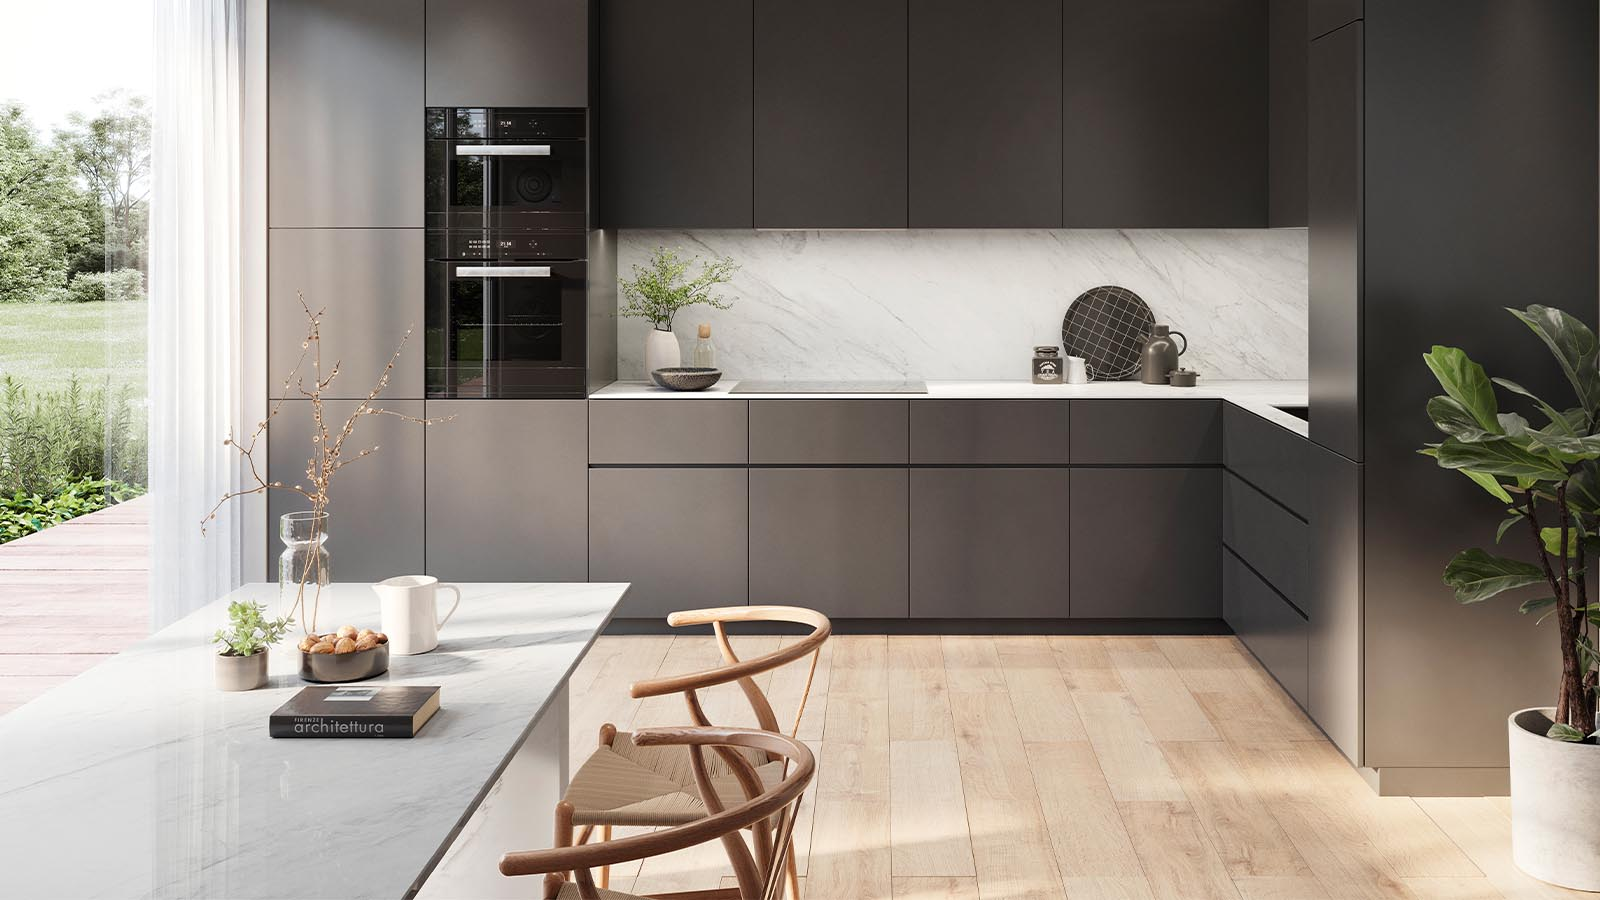 Choosing the right kitchen & dining room furniture sets